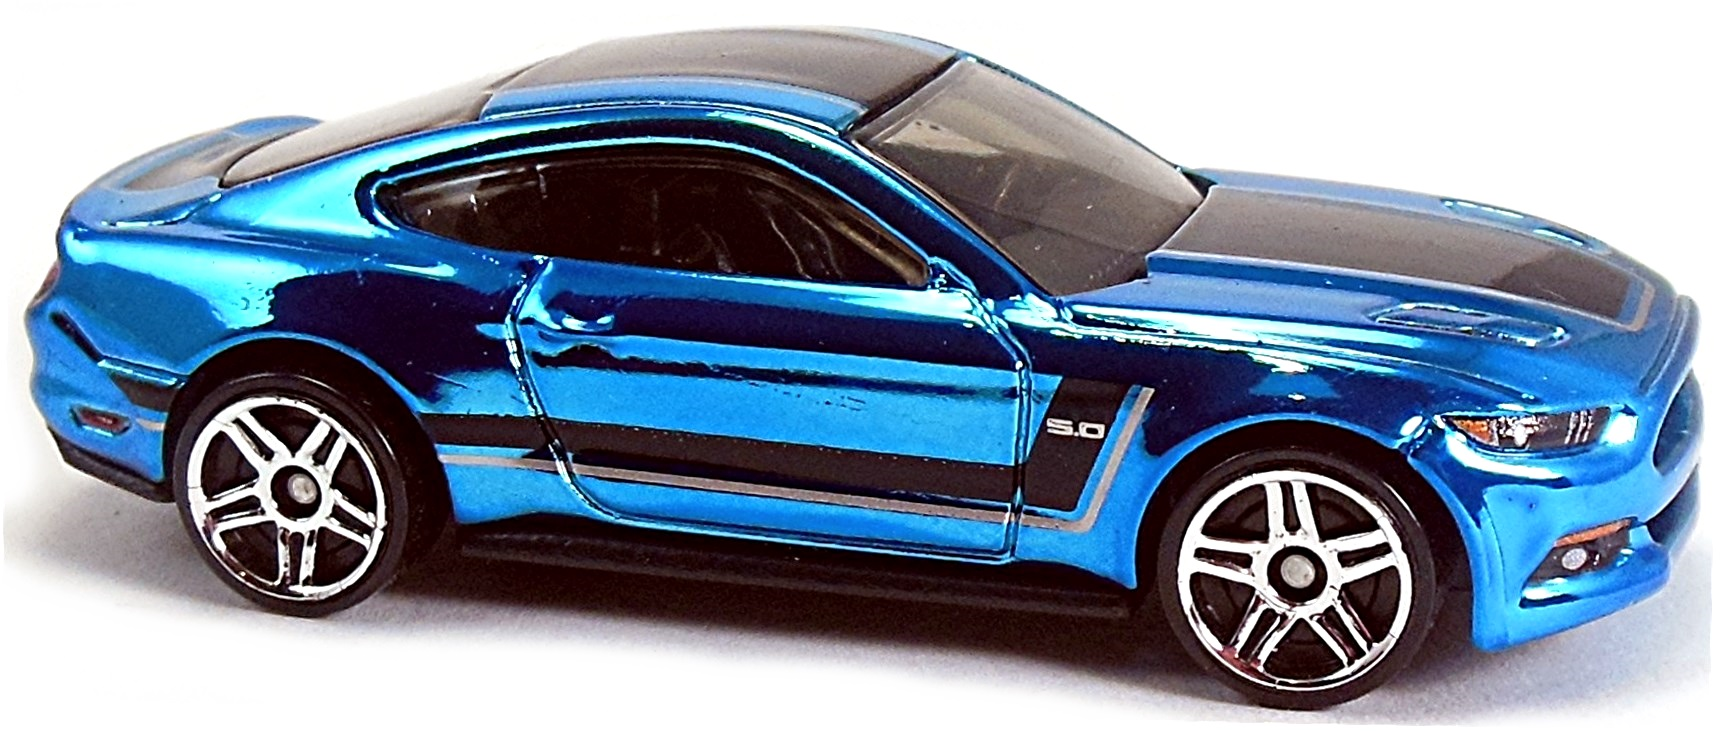 D chrome blue black base and int clear windows black and silver stripes on top and sides pr5 mal 2015 toy fair 2015 30 60